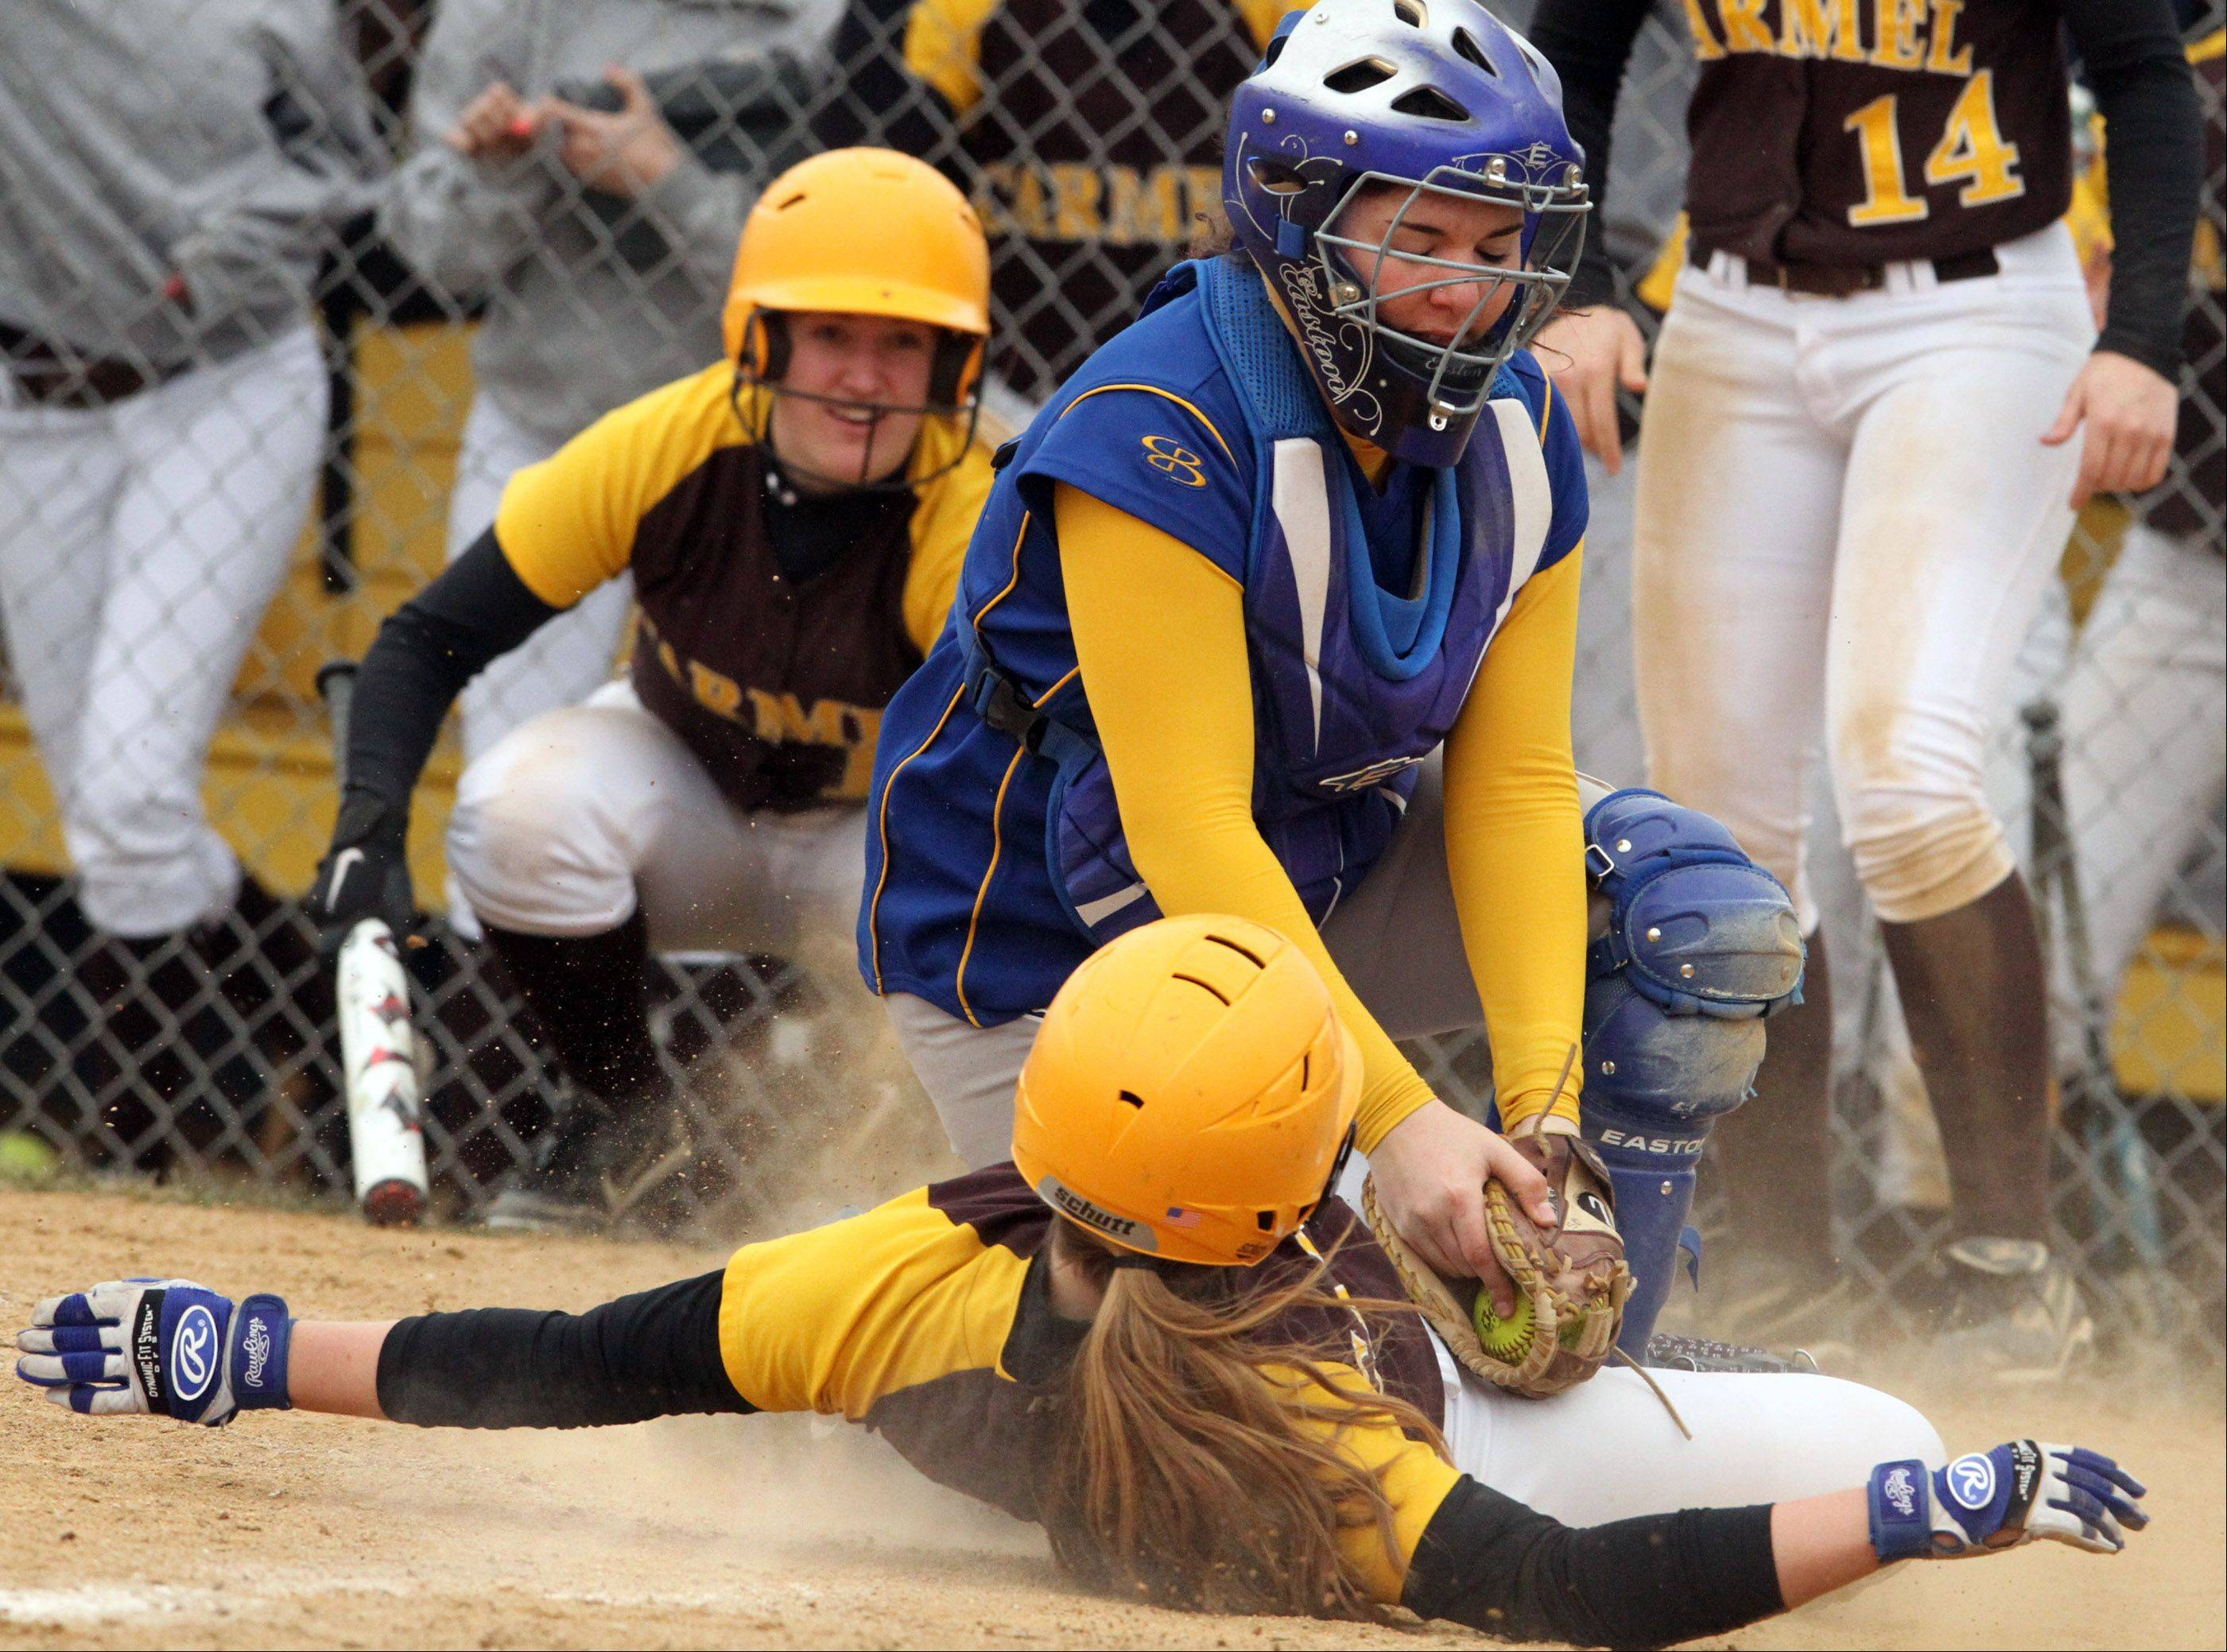 Warren catcher Sam Belletini tags Carmel's Amanda Elert out at home plate at Warren on Saturday.